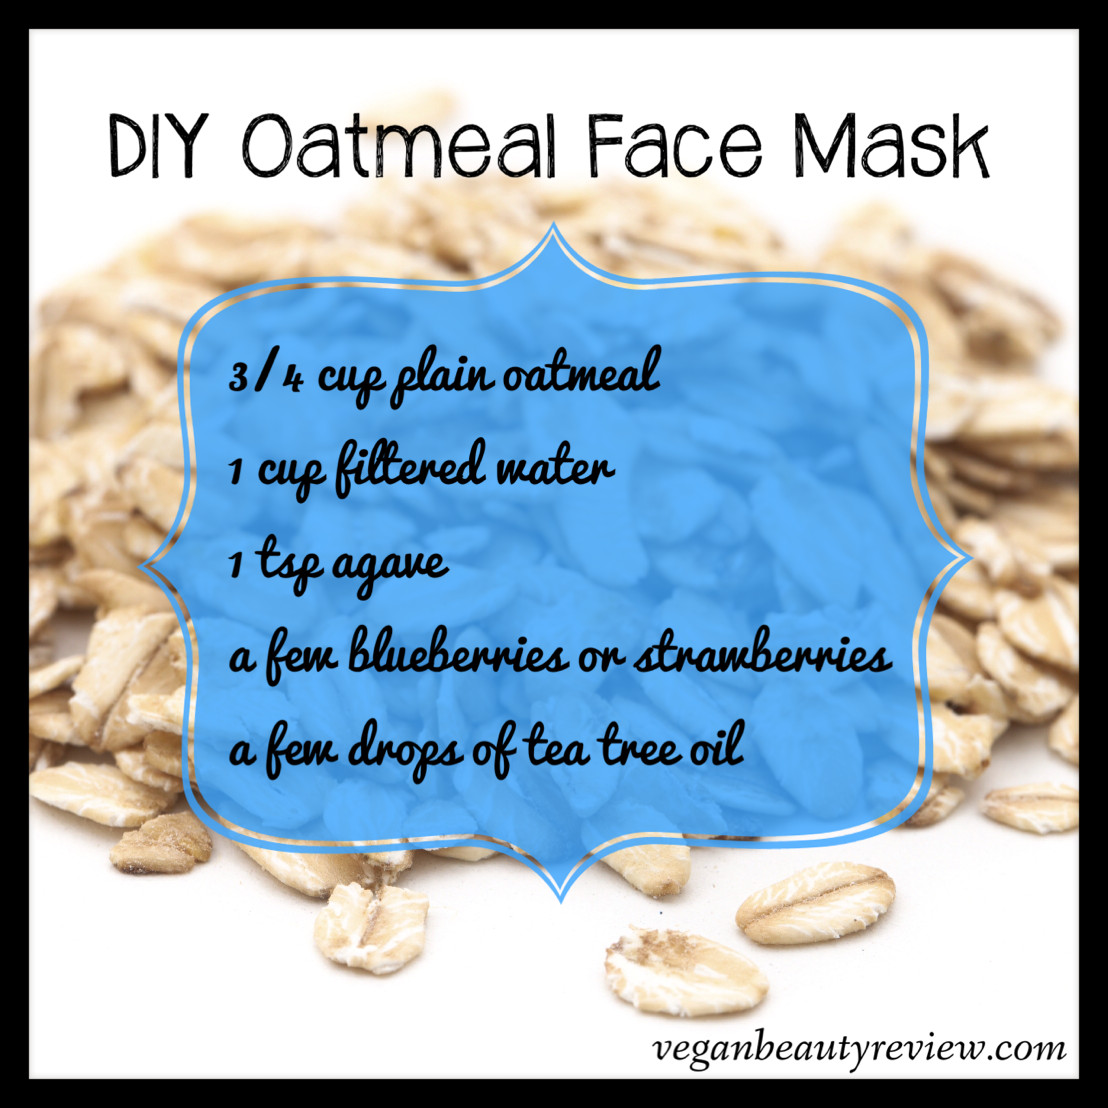 Best ideas about DIY Oatmeal Mask . Save or Pin DIY Oatmeal Face Mask Vegan Beauty Review Now.